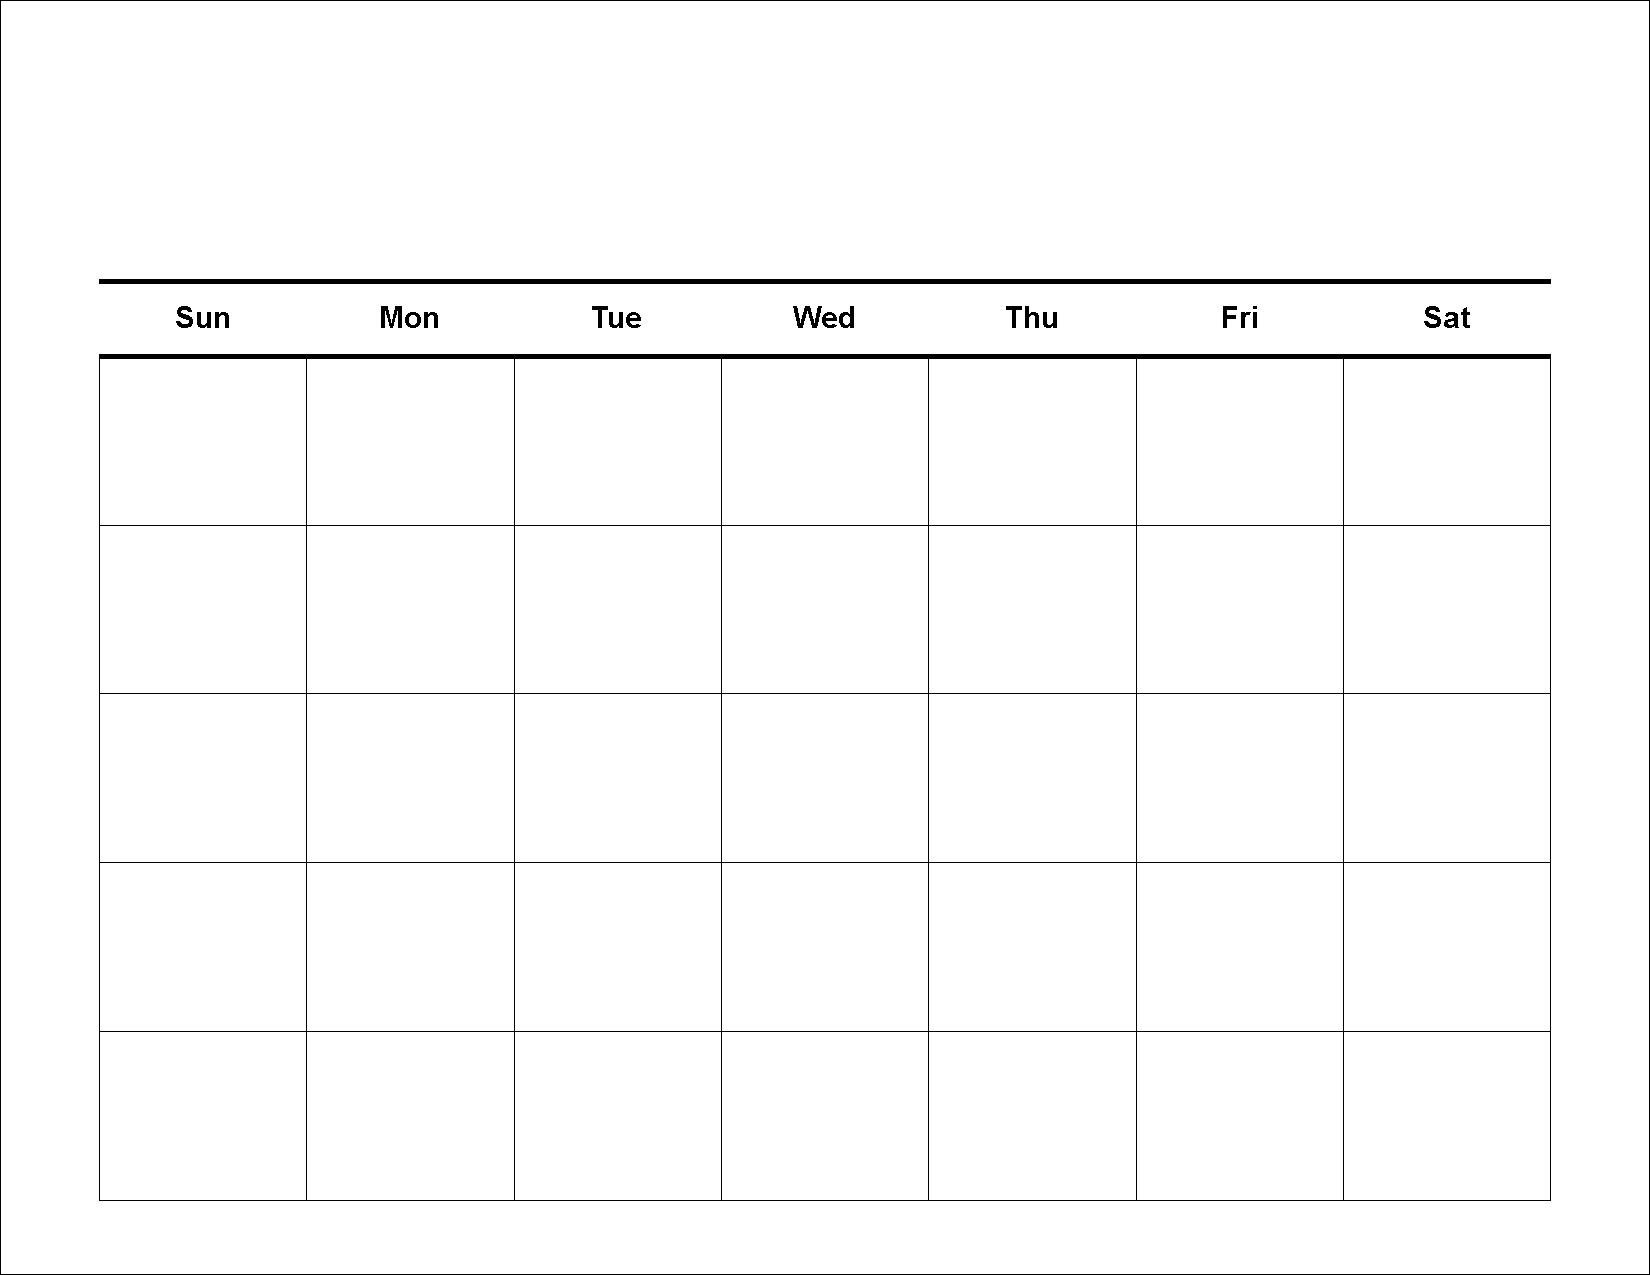 Blank Calendar Template Printable At Fill In Calendar Template pertaining to Fill In Calendar Template Printable